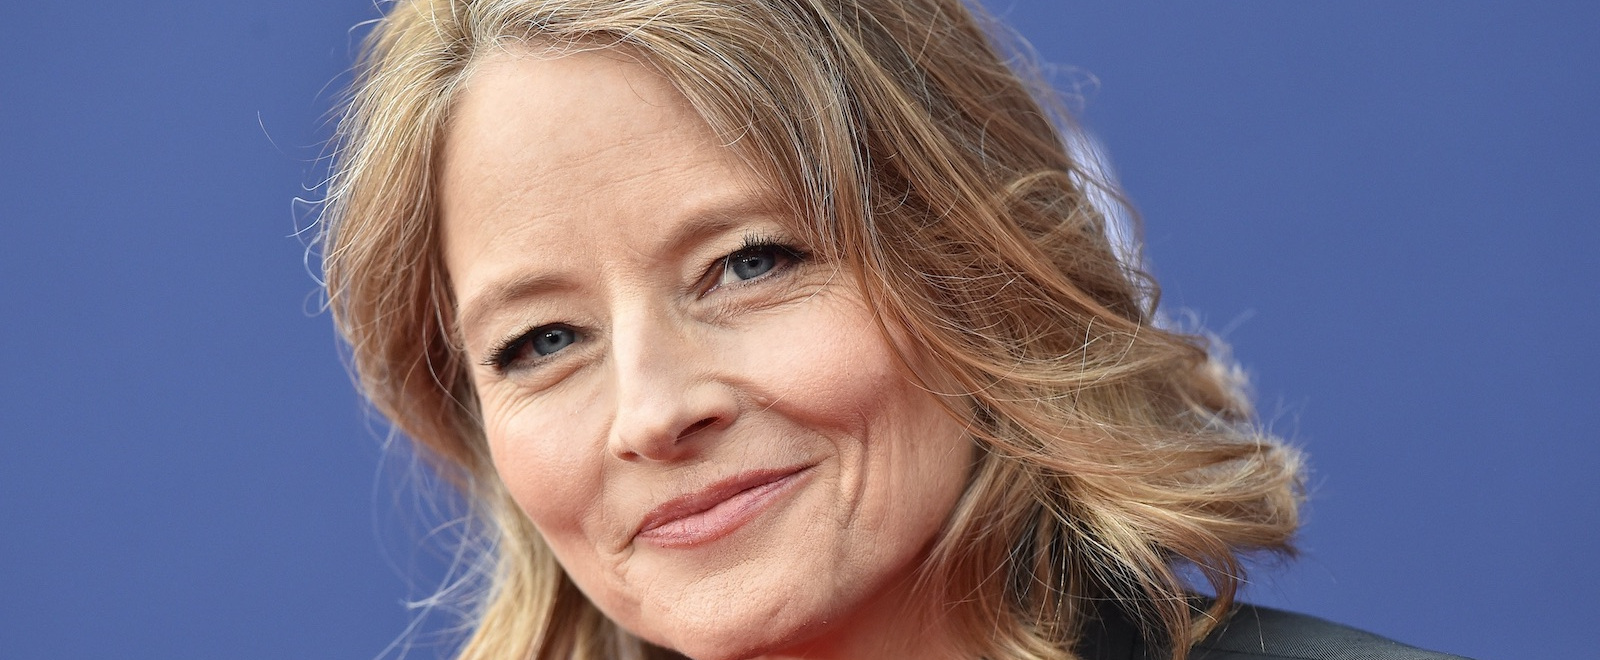 Jodie Foster On 'The Mauritanian' And If She Plans To Watch 'Clarice'